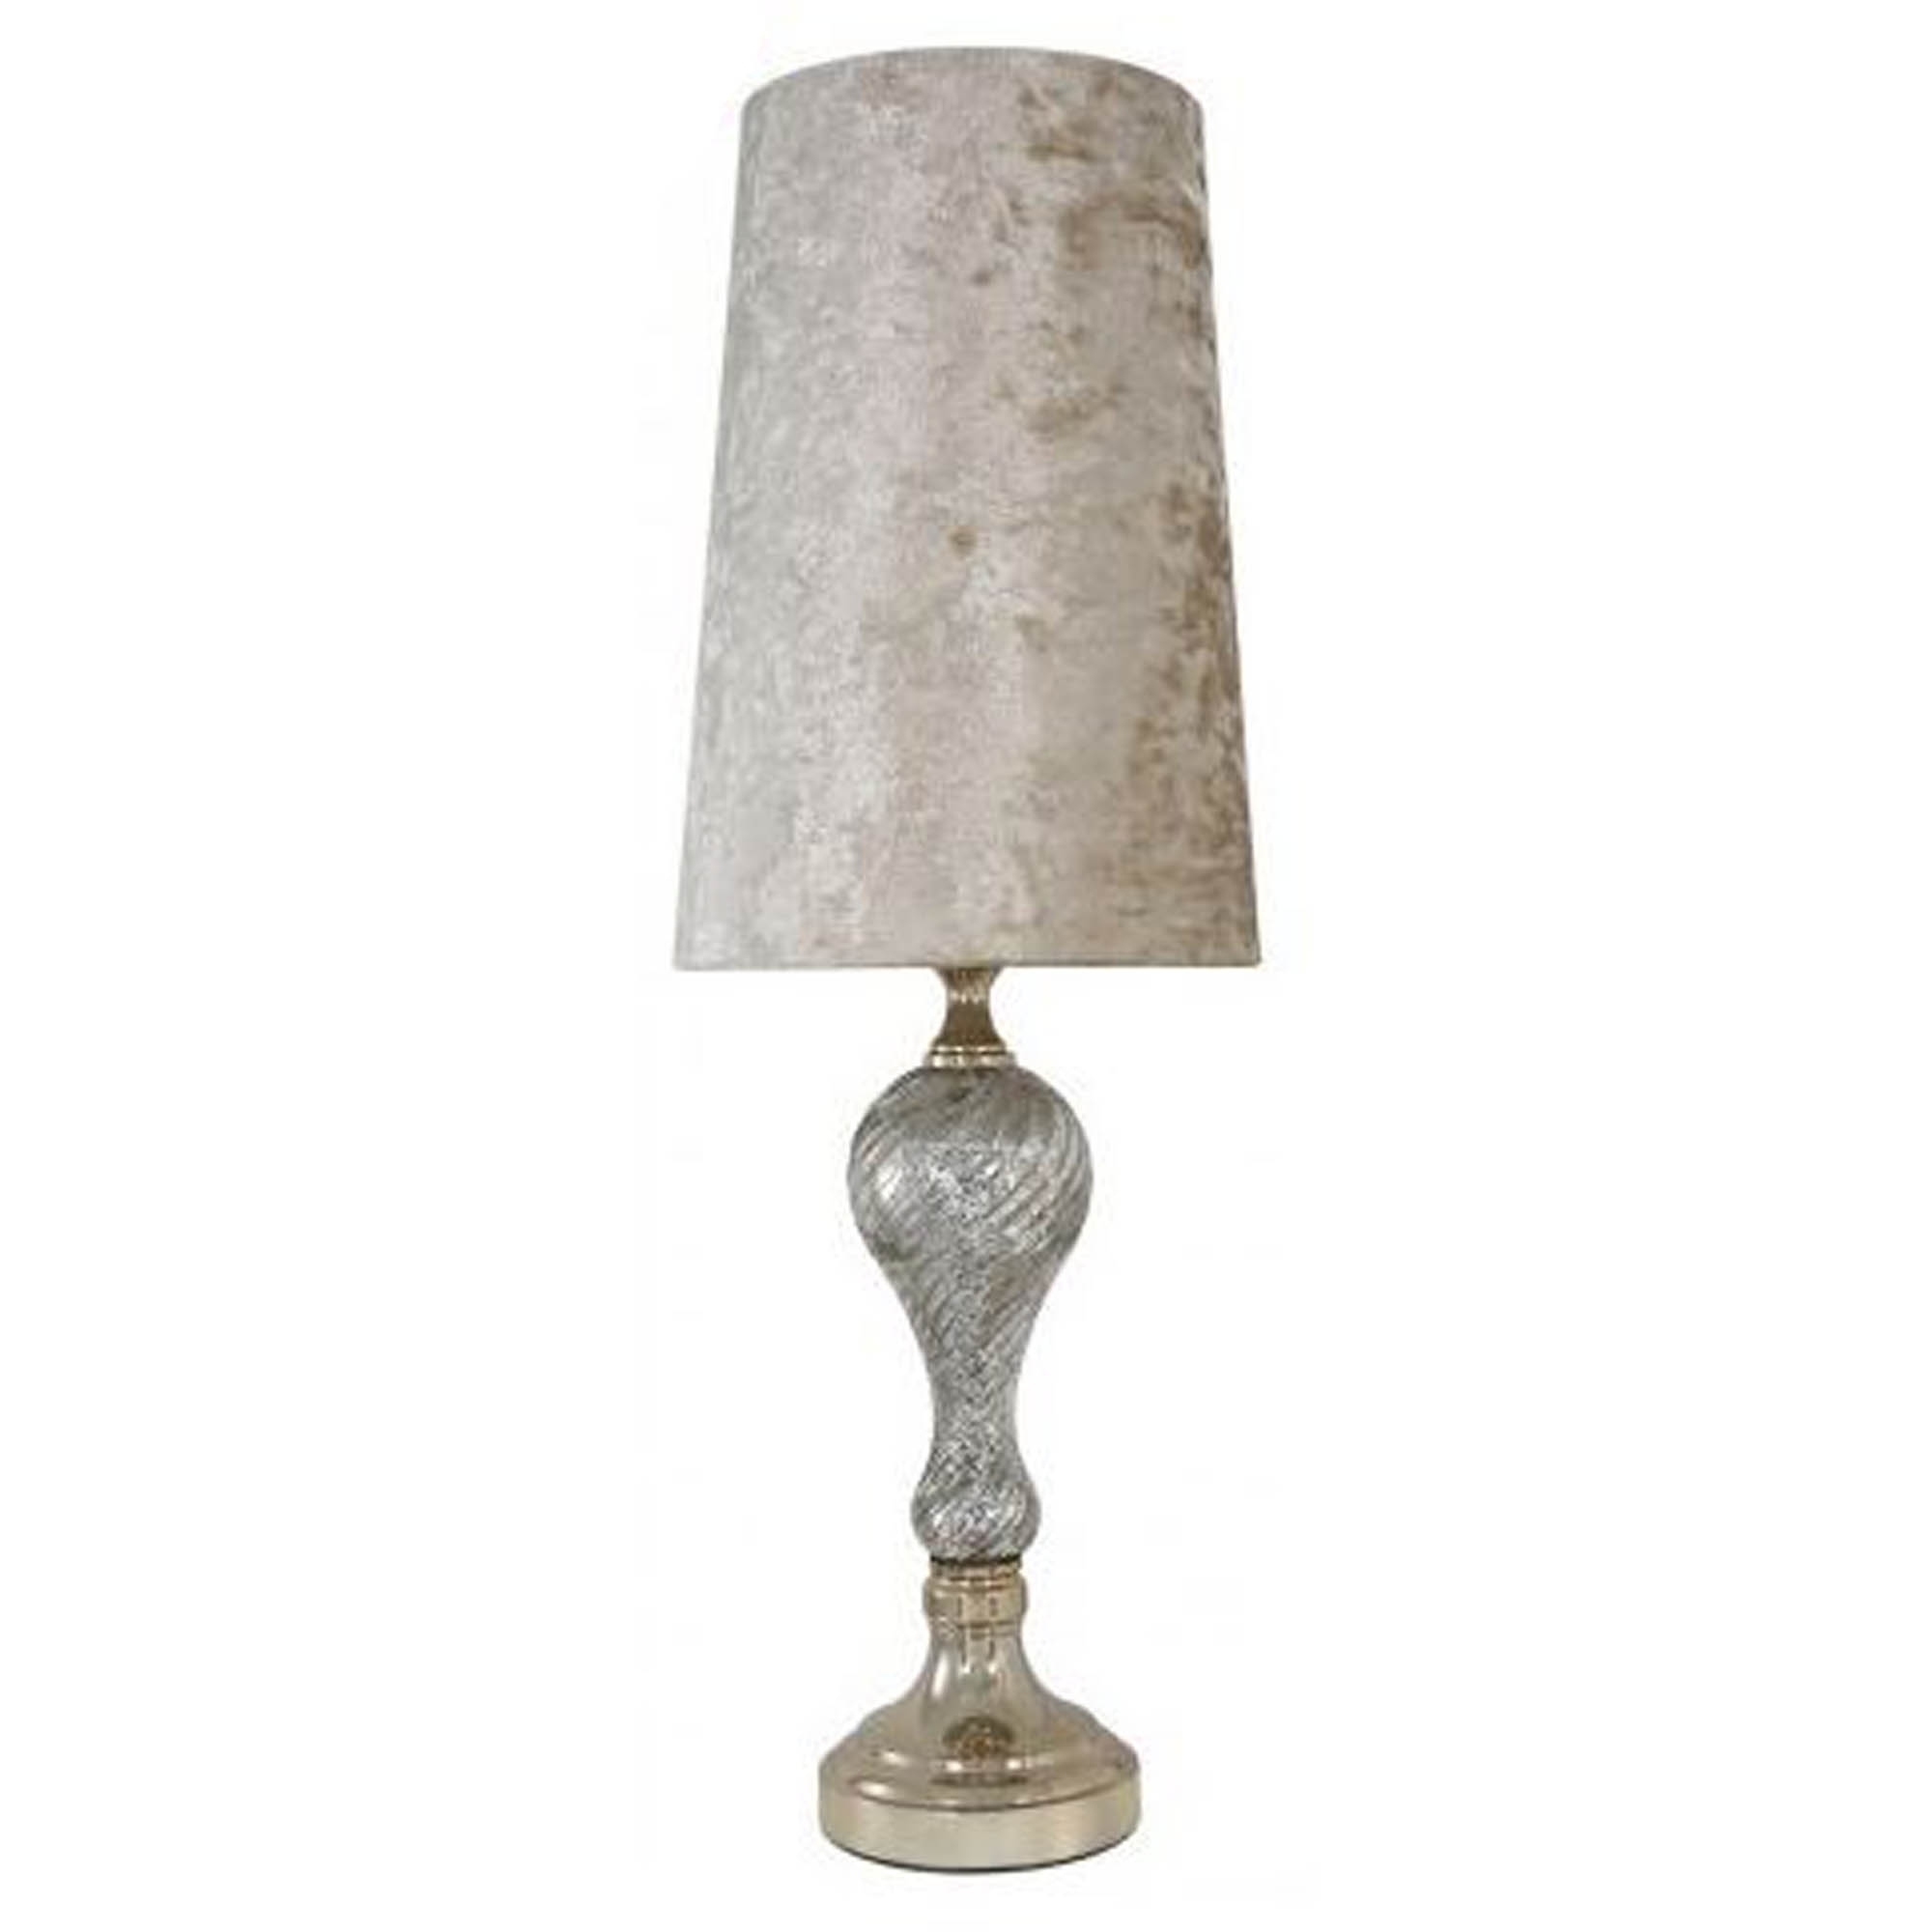 Silver mercury and gold ripple thin table lamp lamp homesdirect365 silver mercury and gold ripple thin table lamp geotapseo Choice Image